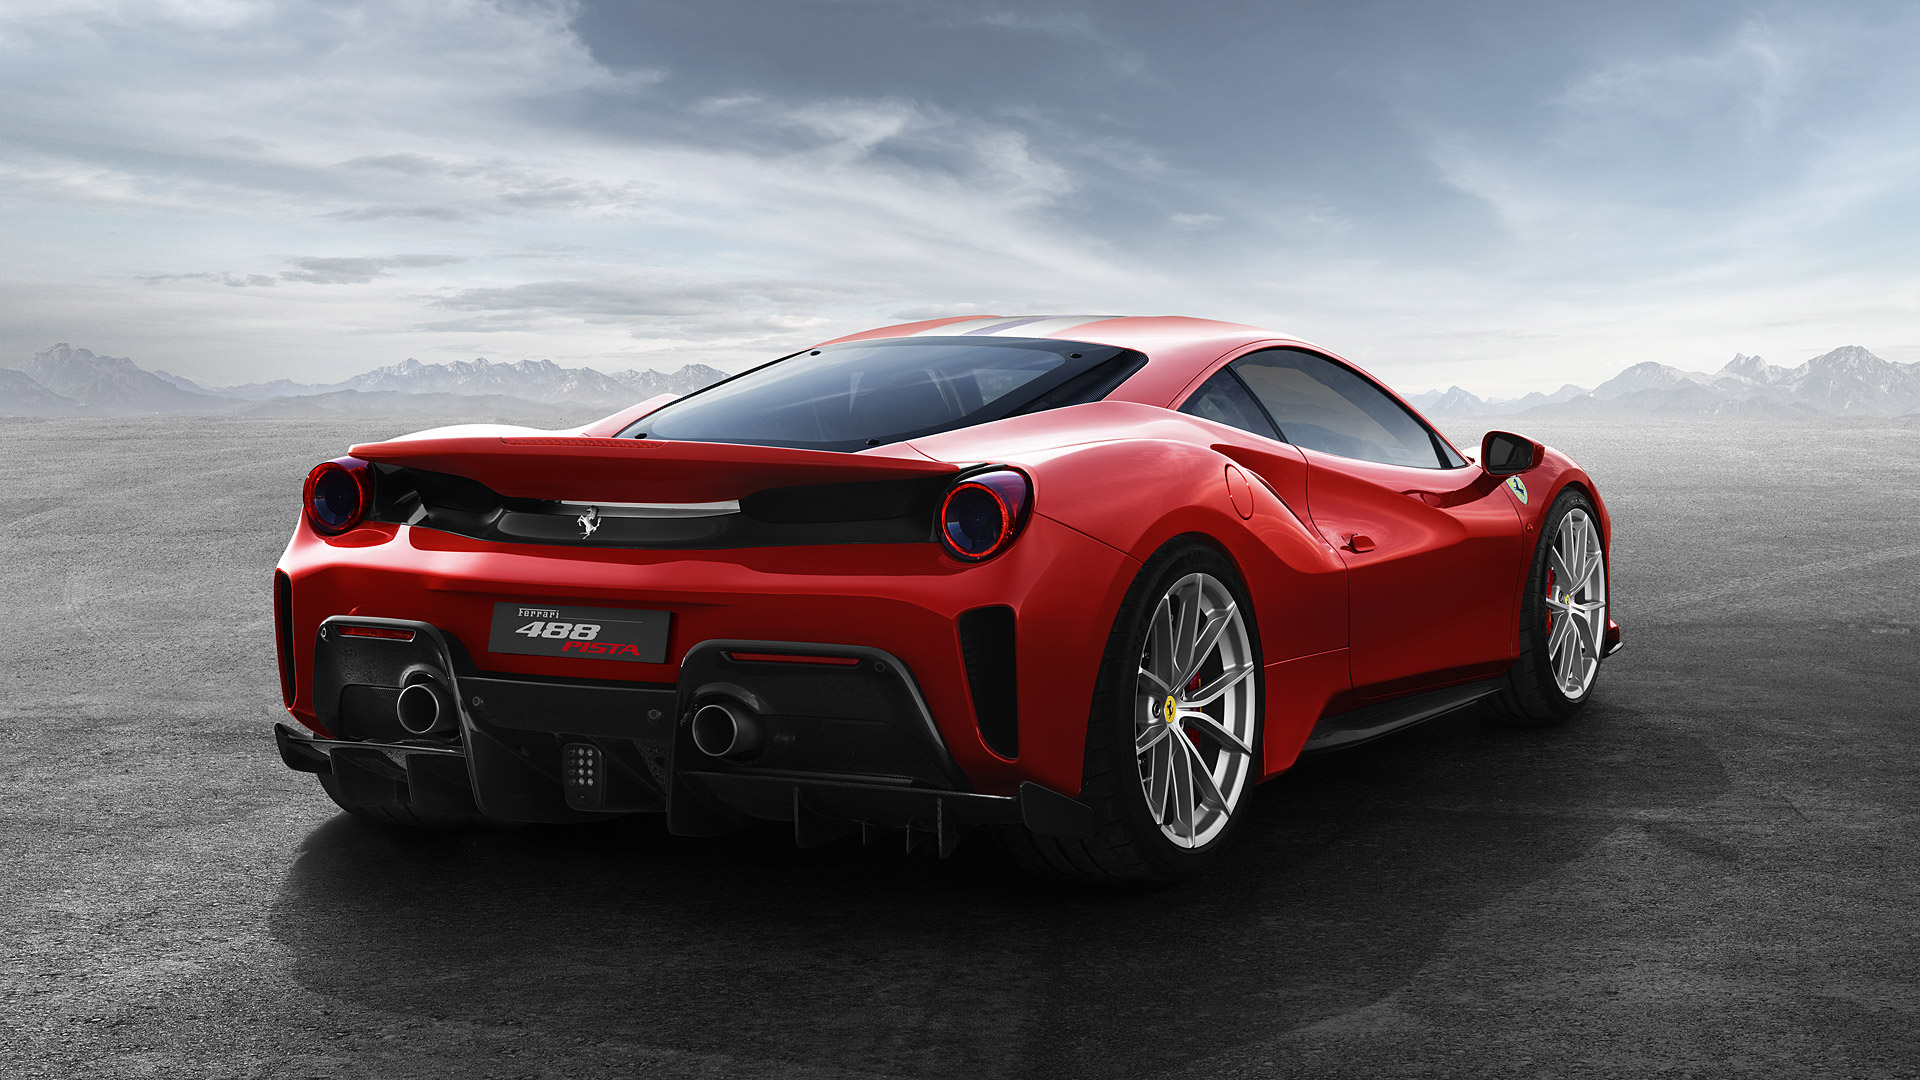 2019 Ferrari 488 Pista Wallpapers HD Images   WSupercars 1920x1080